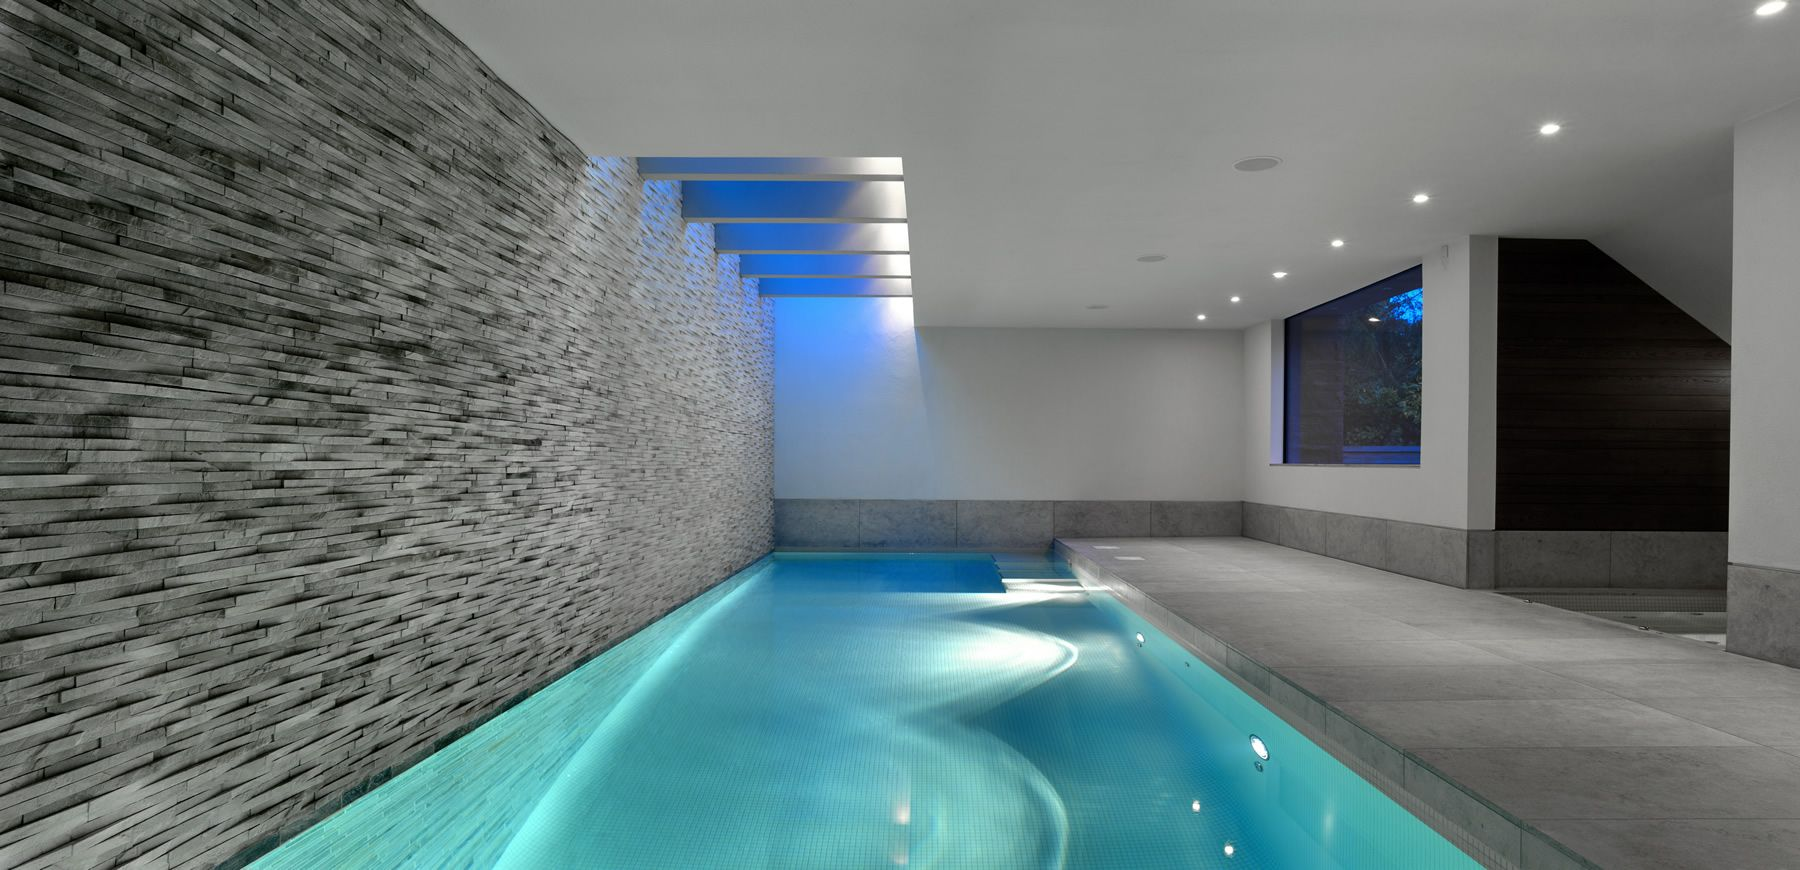 Astounding indoor swimming pool design image 381 50 for Pool durchmesser 4 50